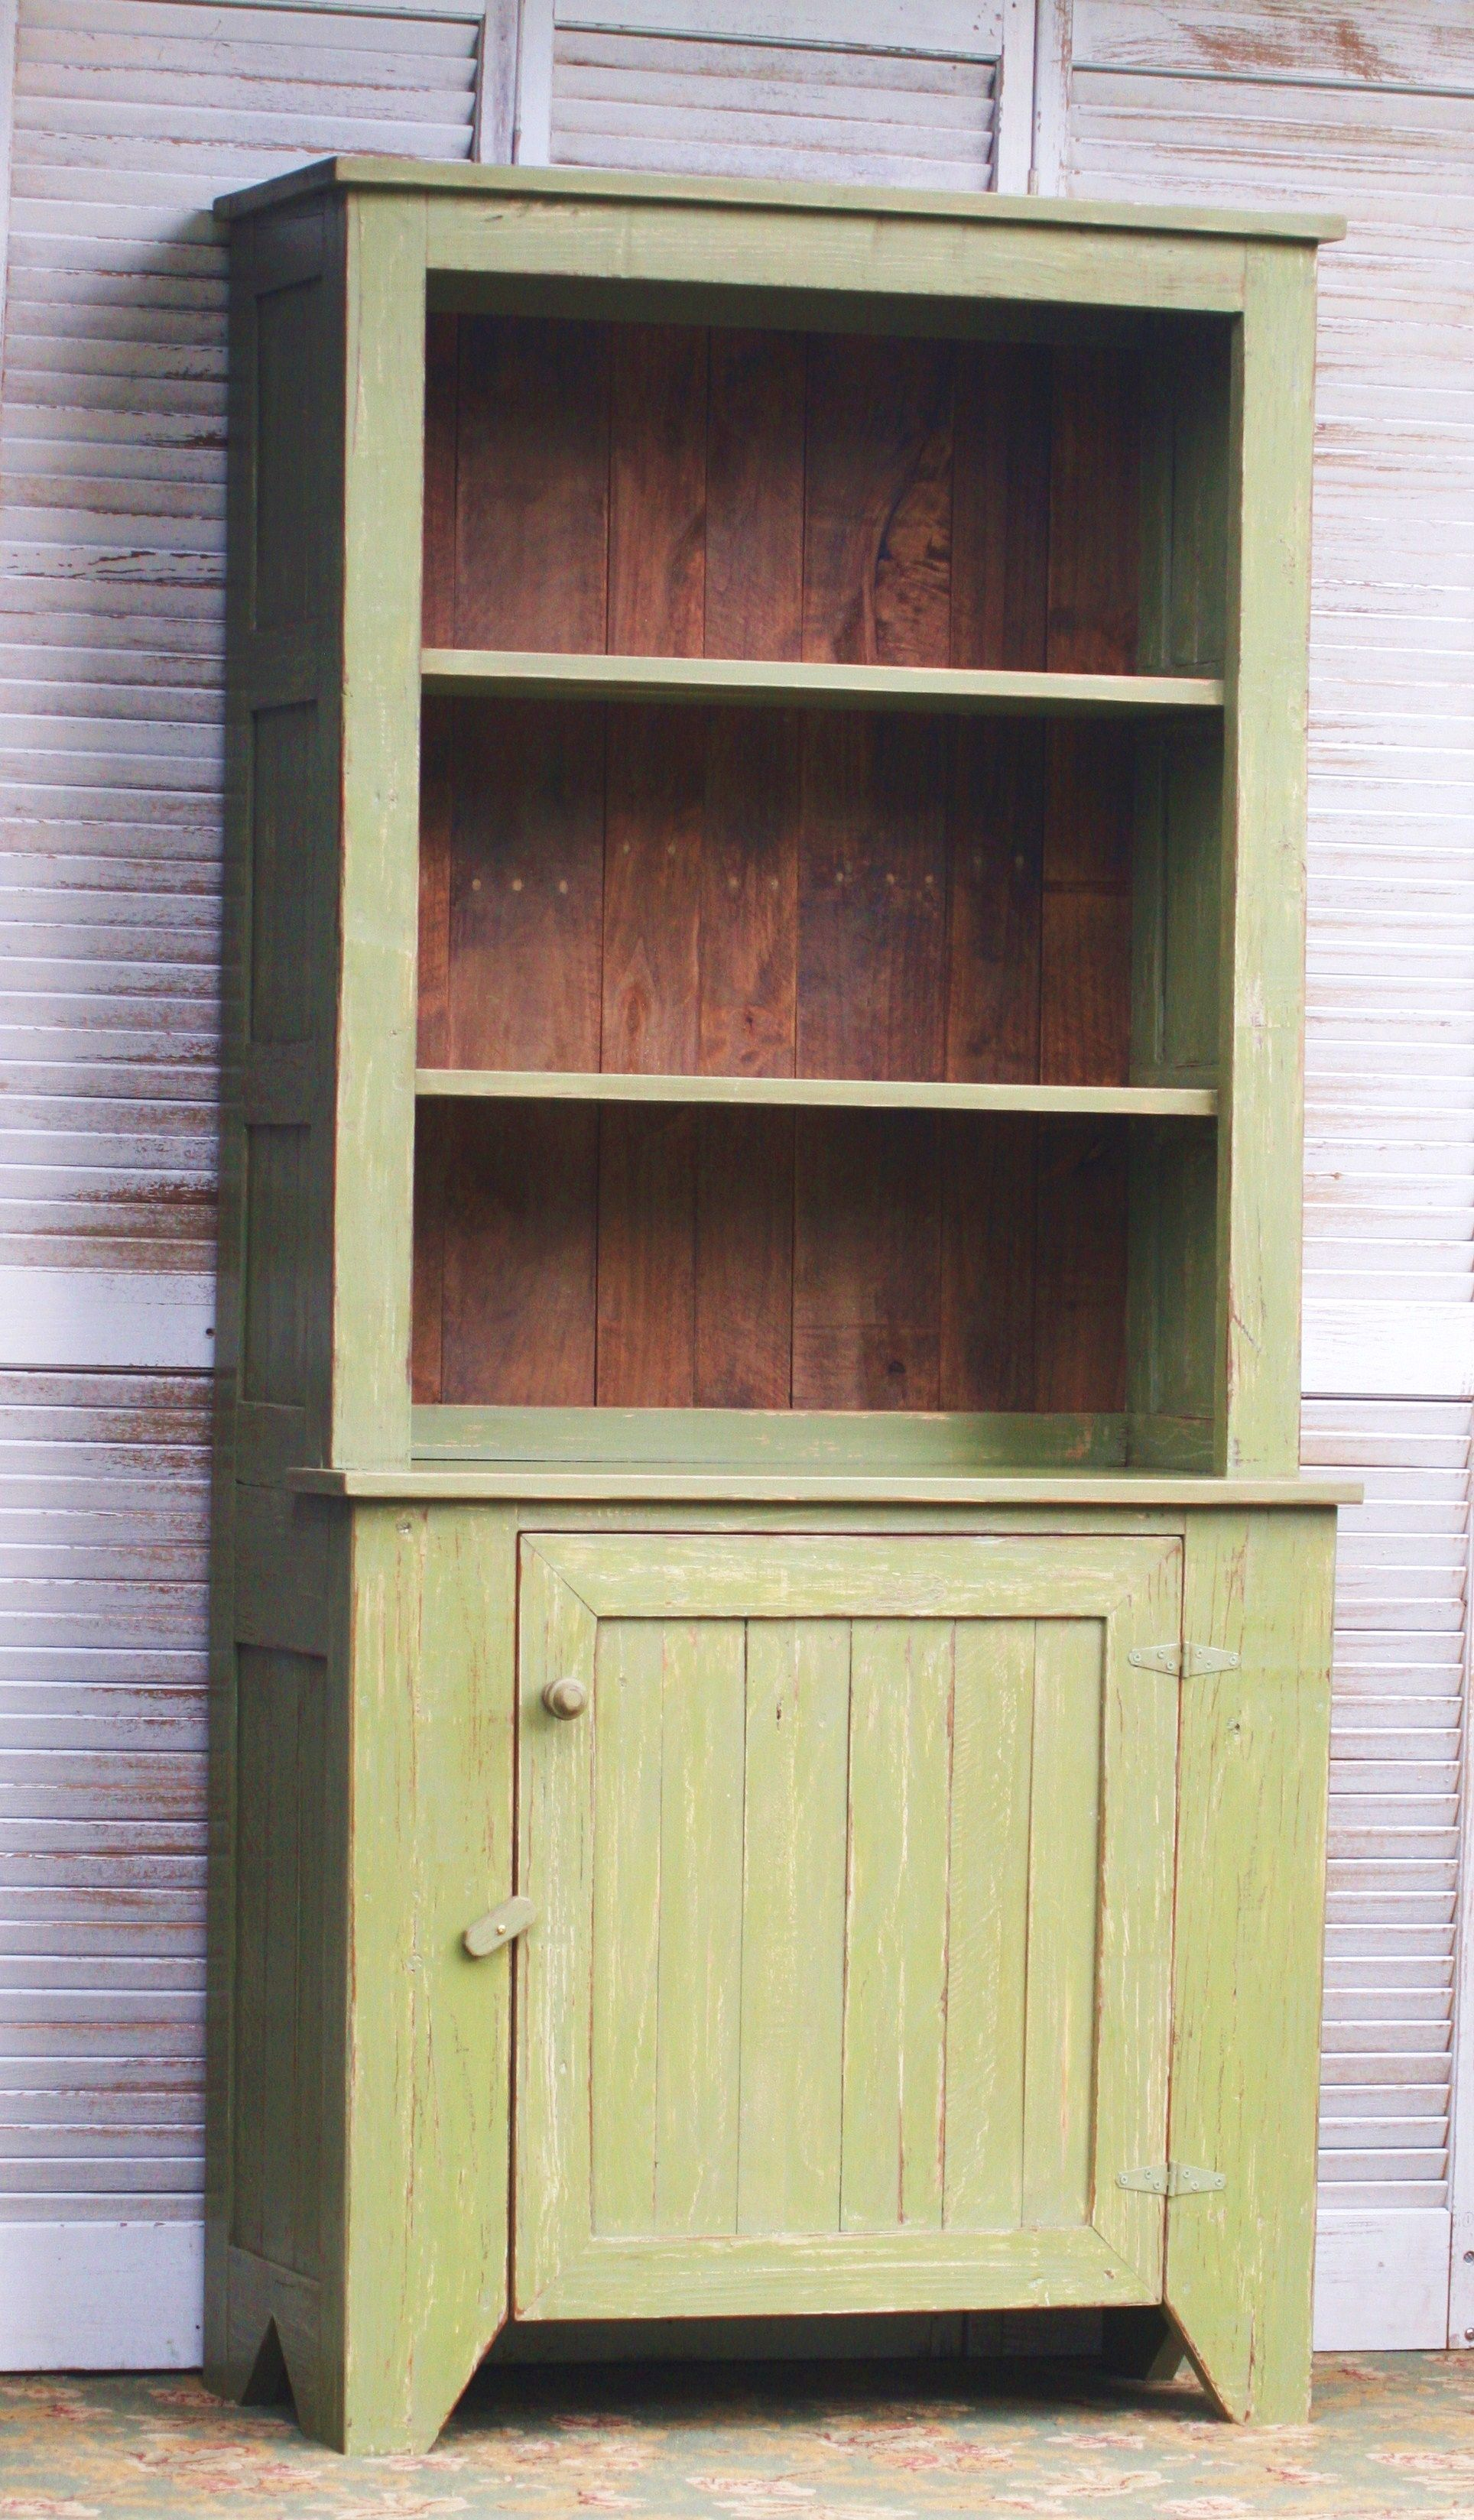 display glass designs door dutchmans hutches cabinet cottage kitchen dining cottages collections cabinets w cupboard